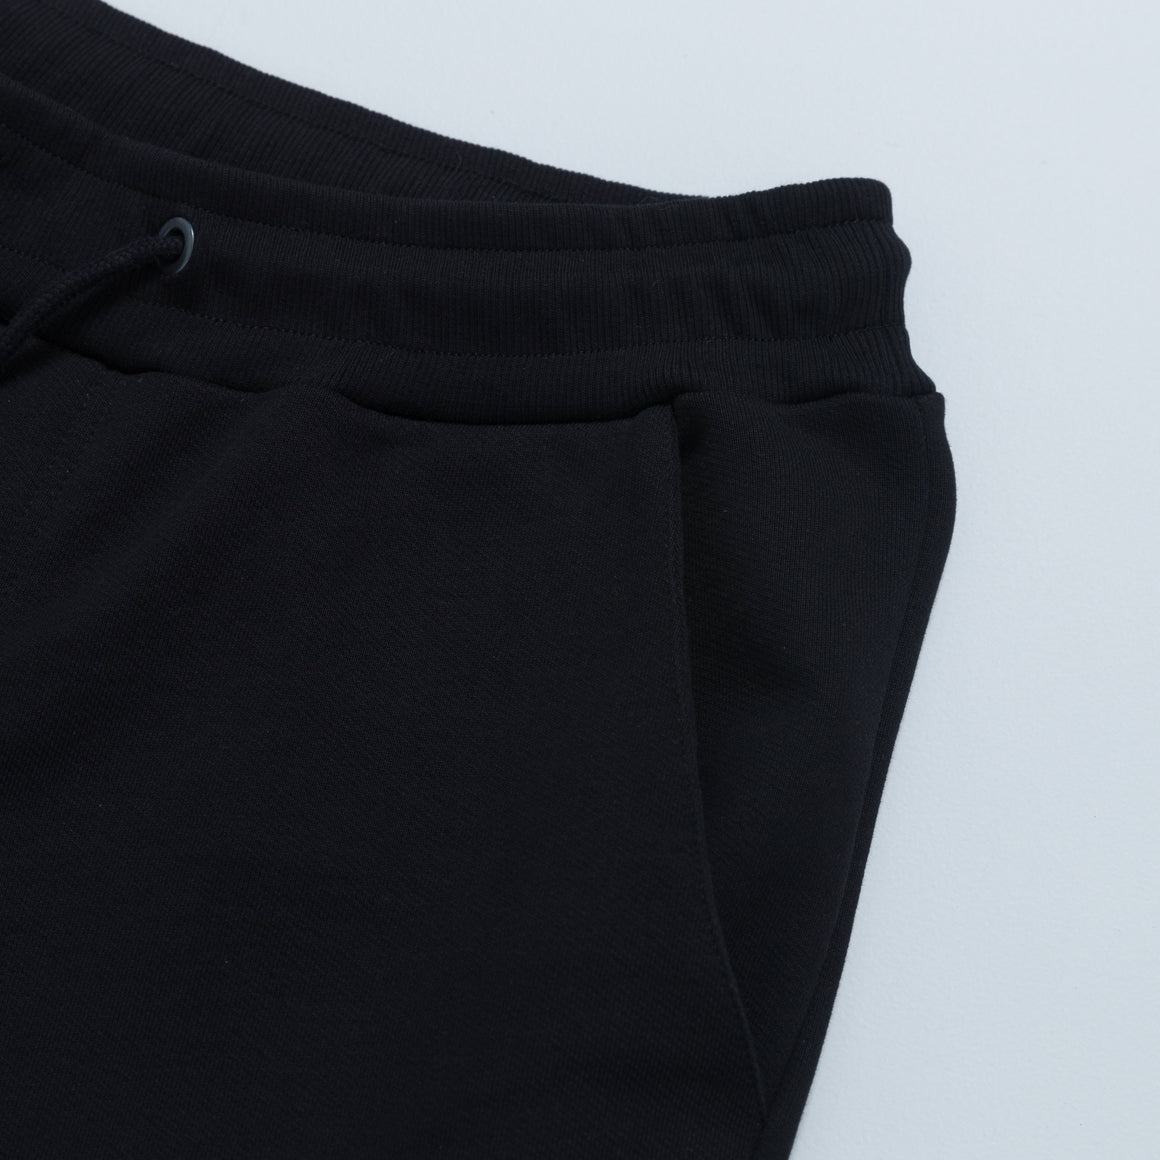 Neal Shorts - Pistol Black - Up There